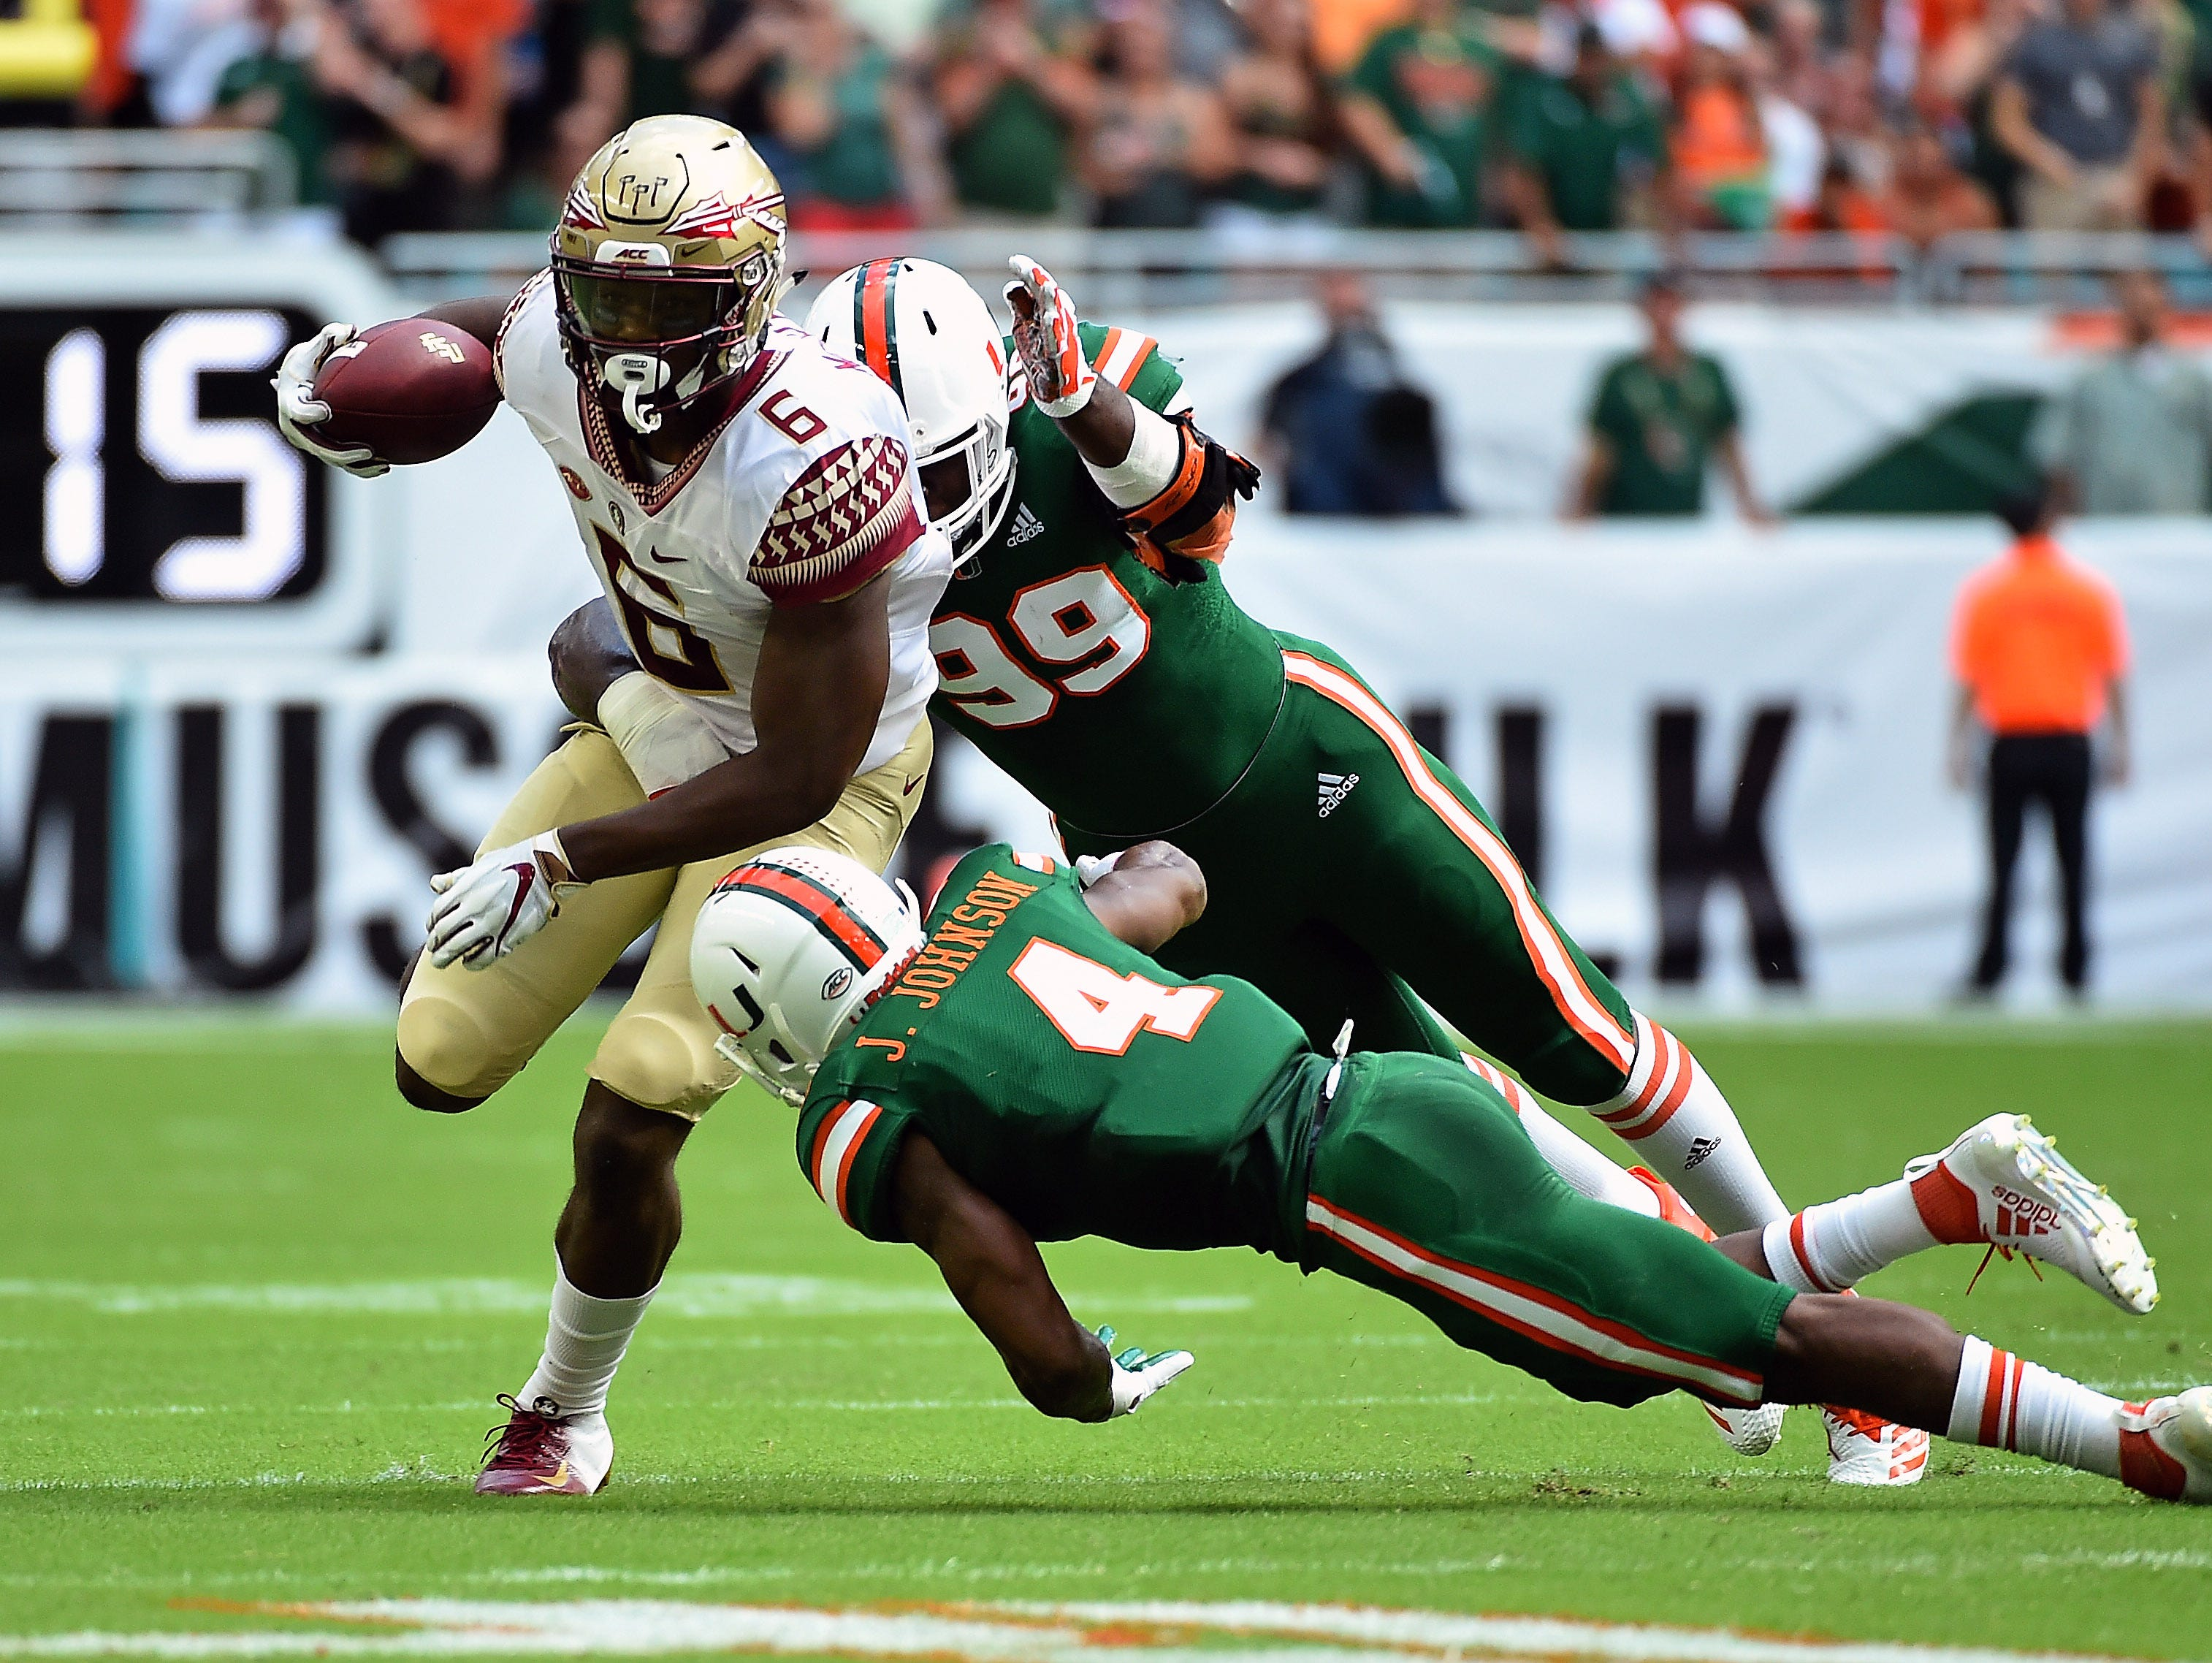 Oct 6, 2018; Miami Gardens, FL, USA; Miami Hurricanes defensive back Jaquan Johnson (4) and defensive lineman Joe Jackson (99) chase Florida State Seminoles tight end Tre' McKitty (6) during the first half at Hard Rock Stadium. Mandatory Credit: Jasen Vinlove-USA TODAY Sports